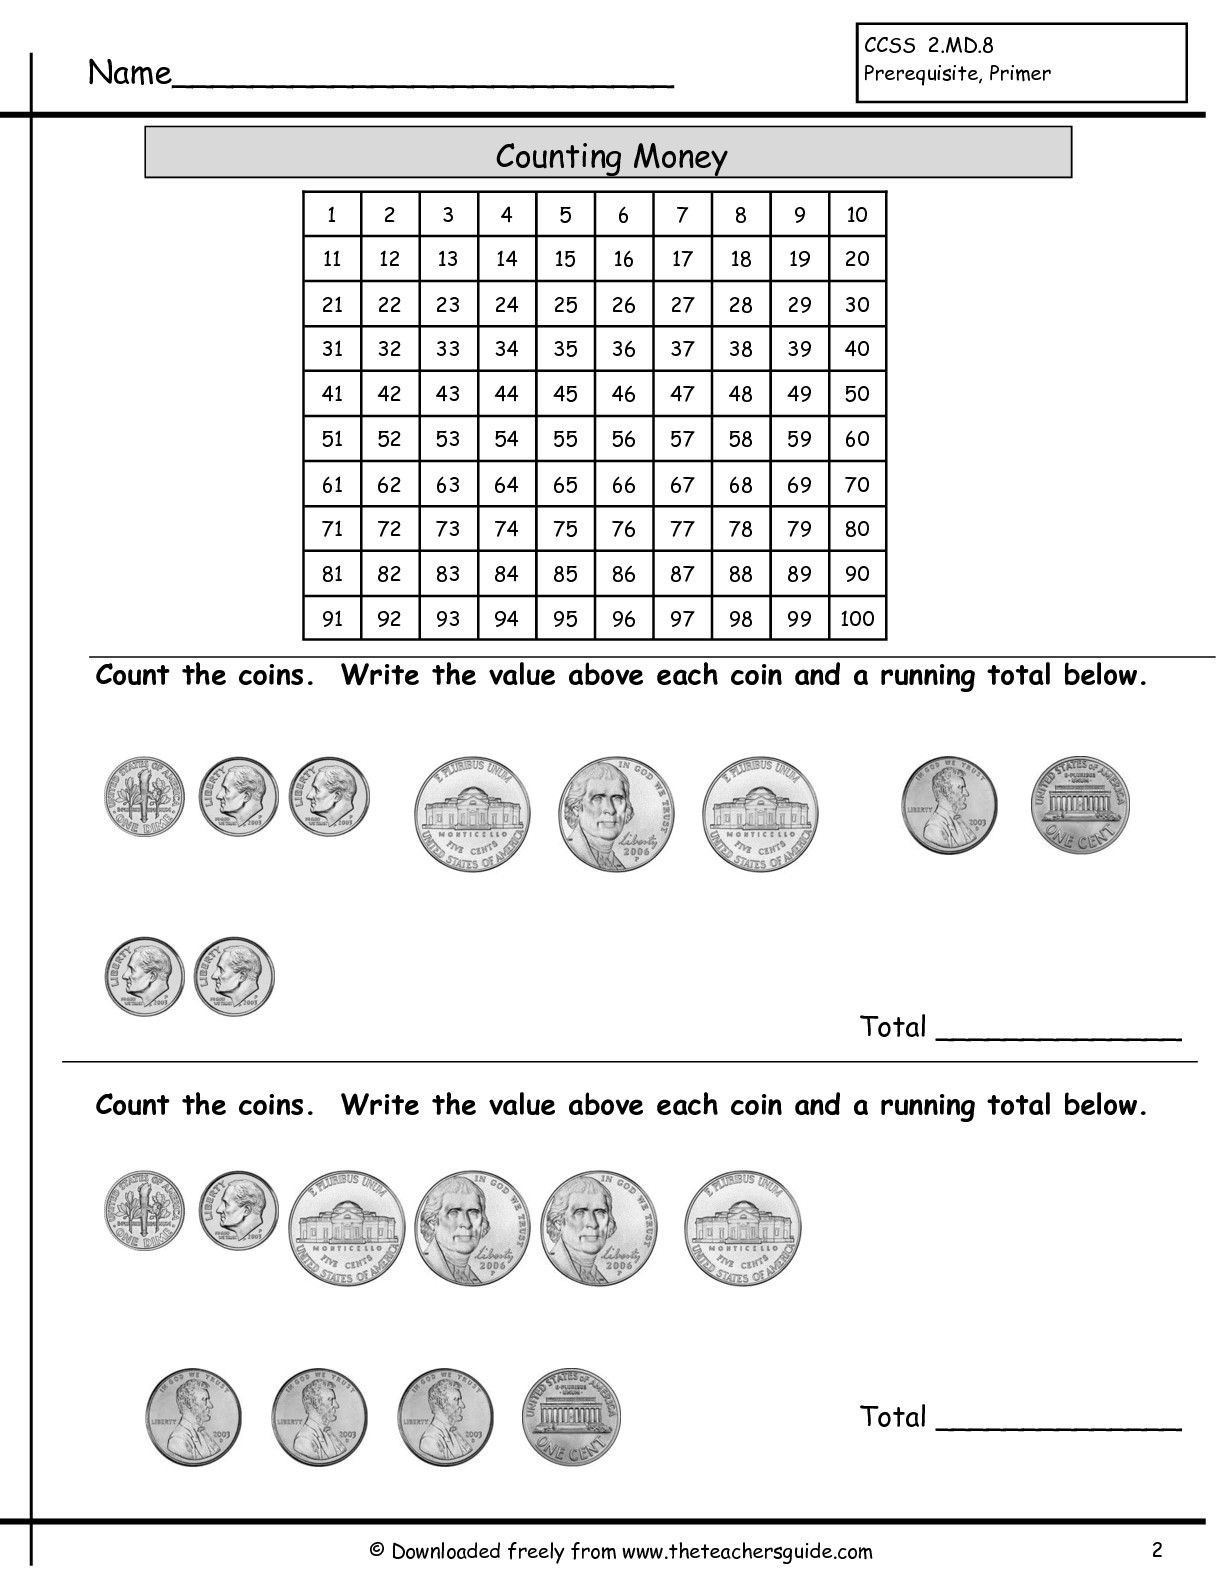 Counting Coins Worksheets 2nd Grade Counting Coins Worksheet